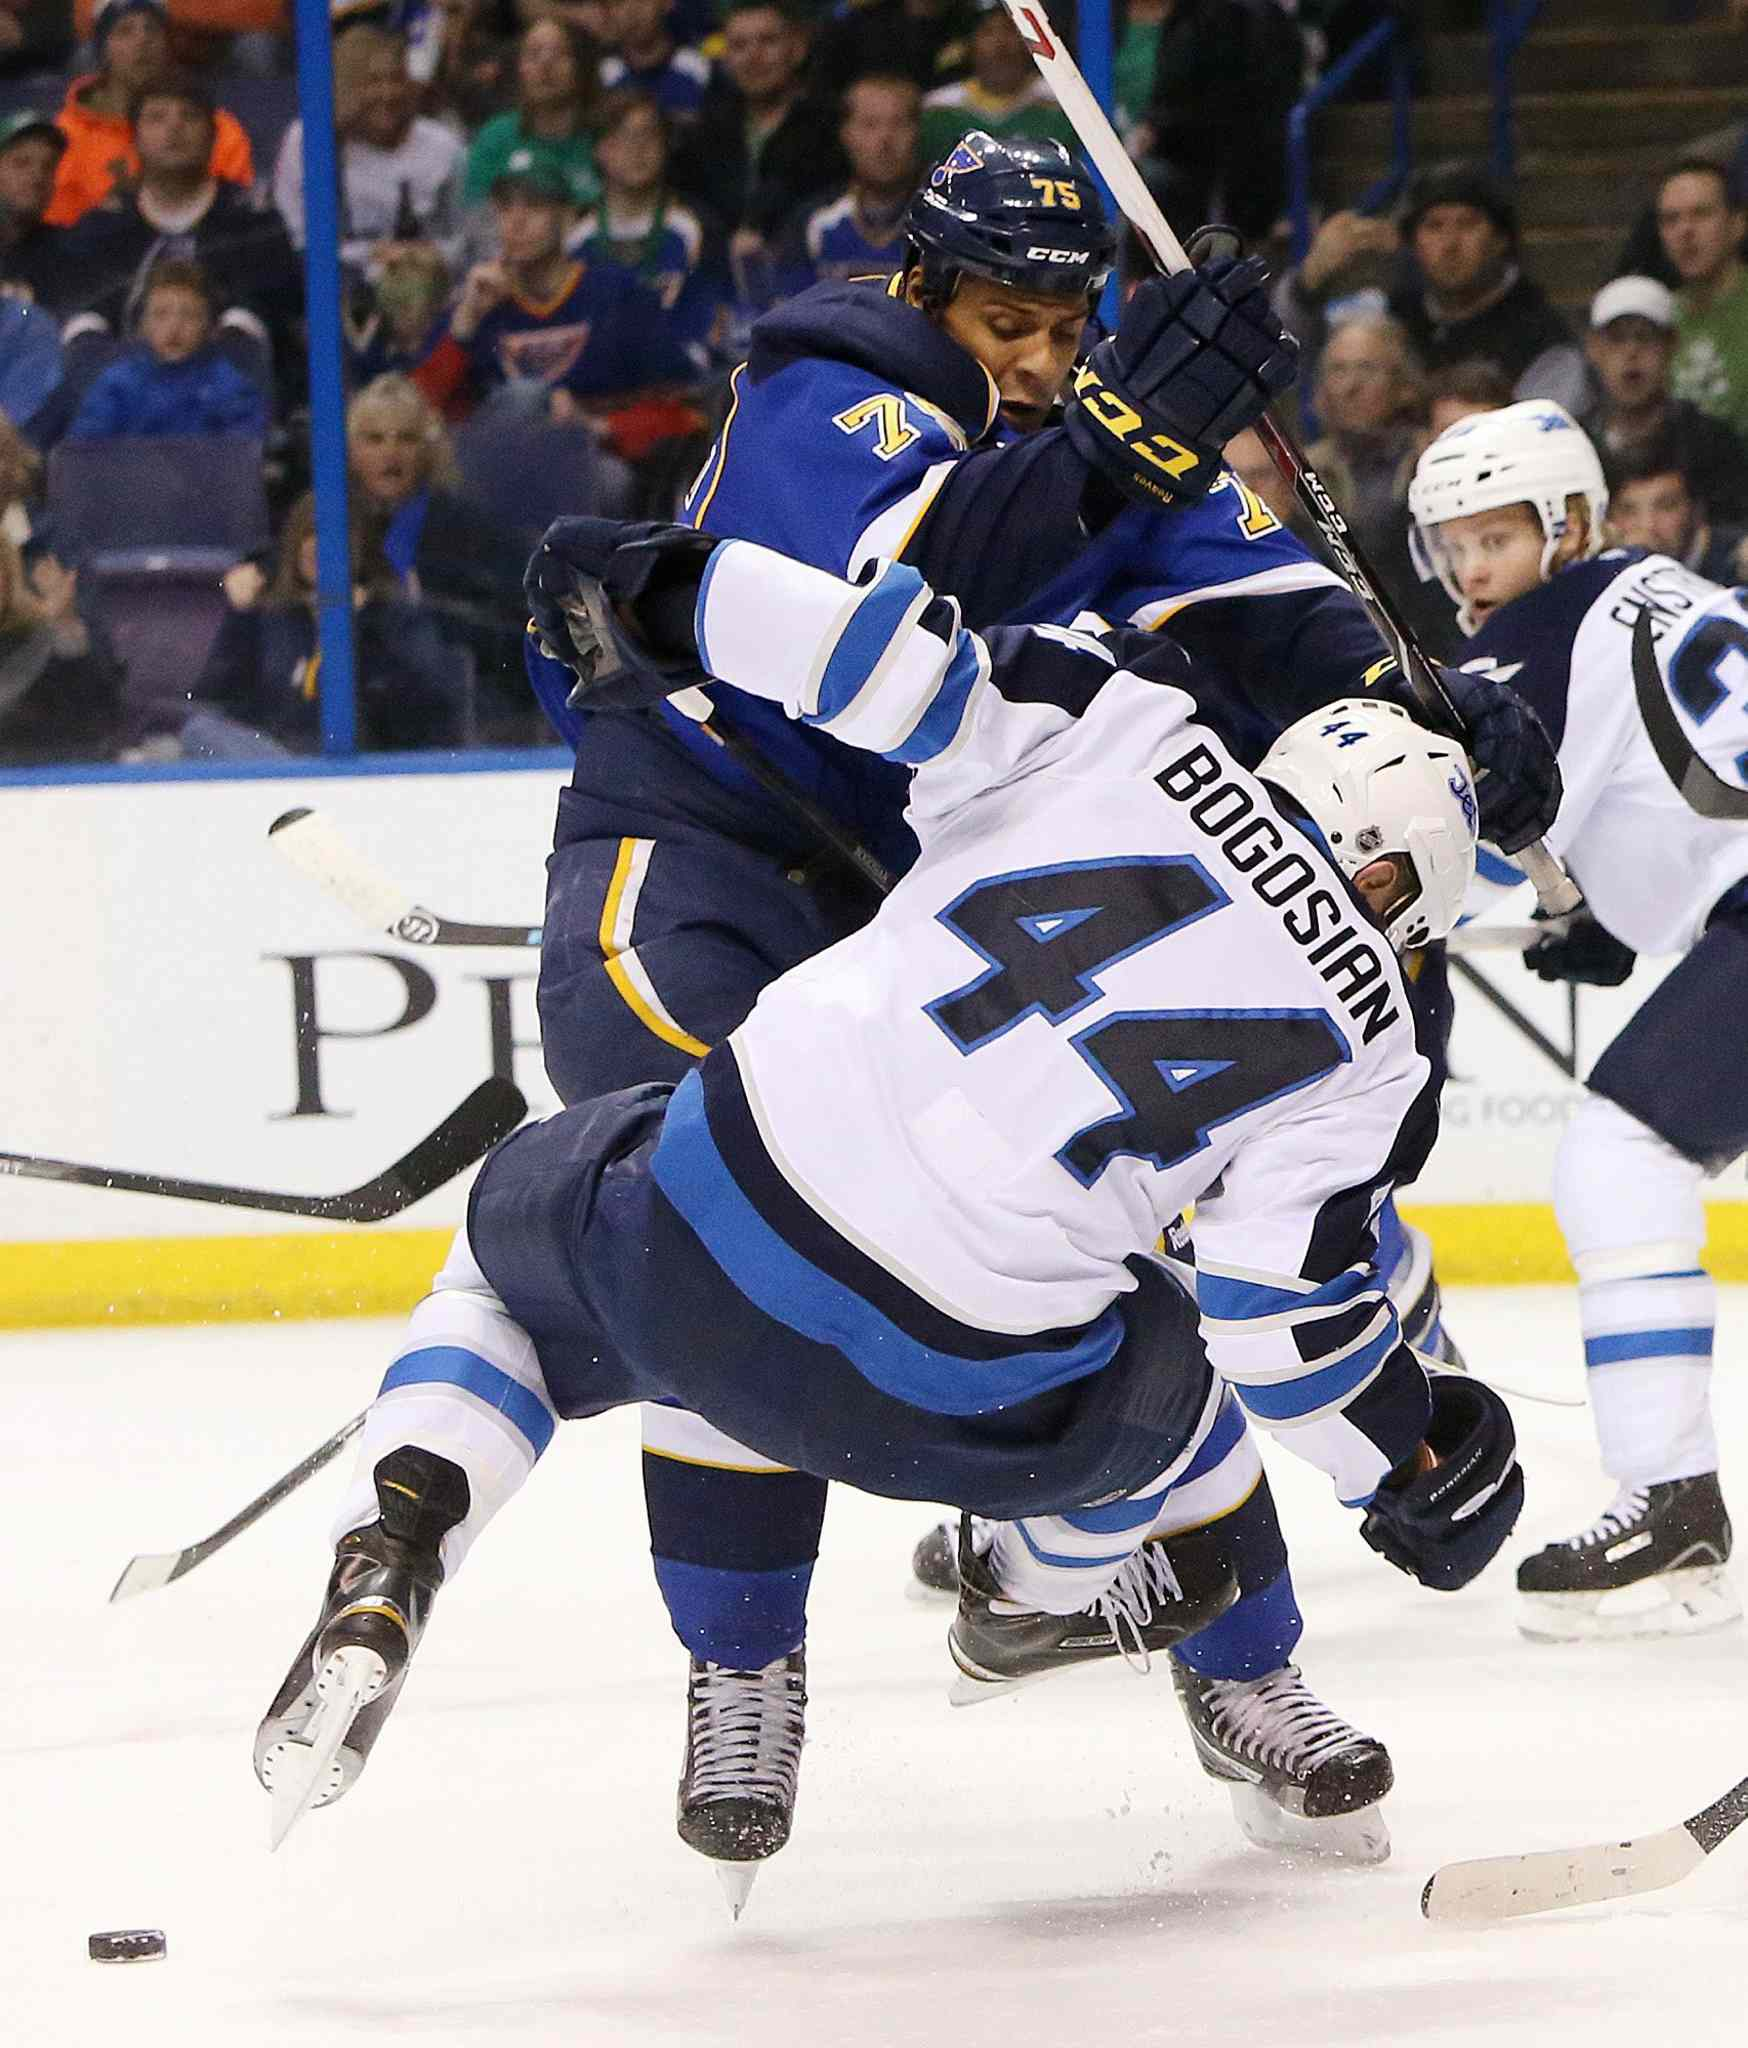 Blues forward Ryan Reaves knocks down Jets defenceman Zach Bogosian in the first period.